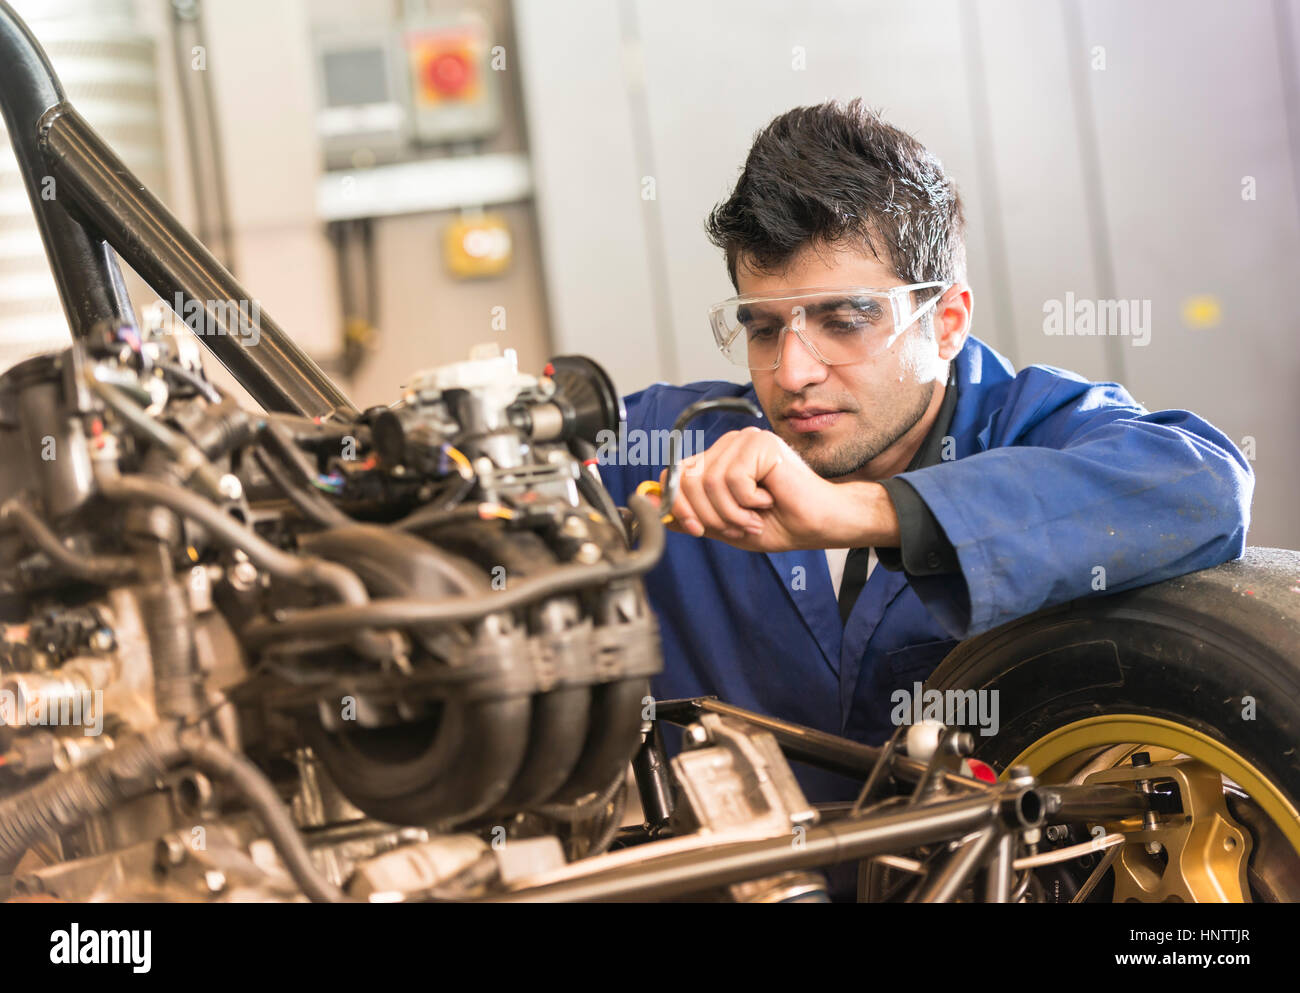 Mechanic working on a car engine - Stock Image